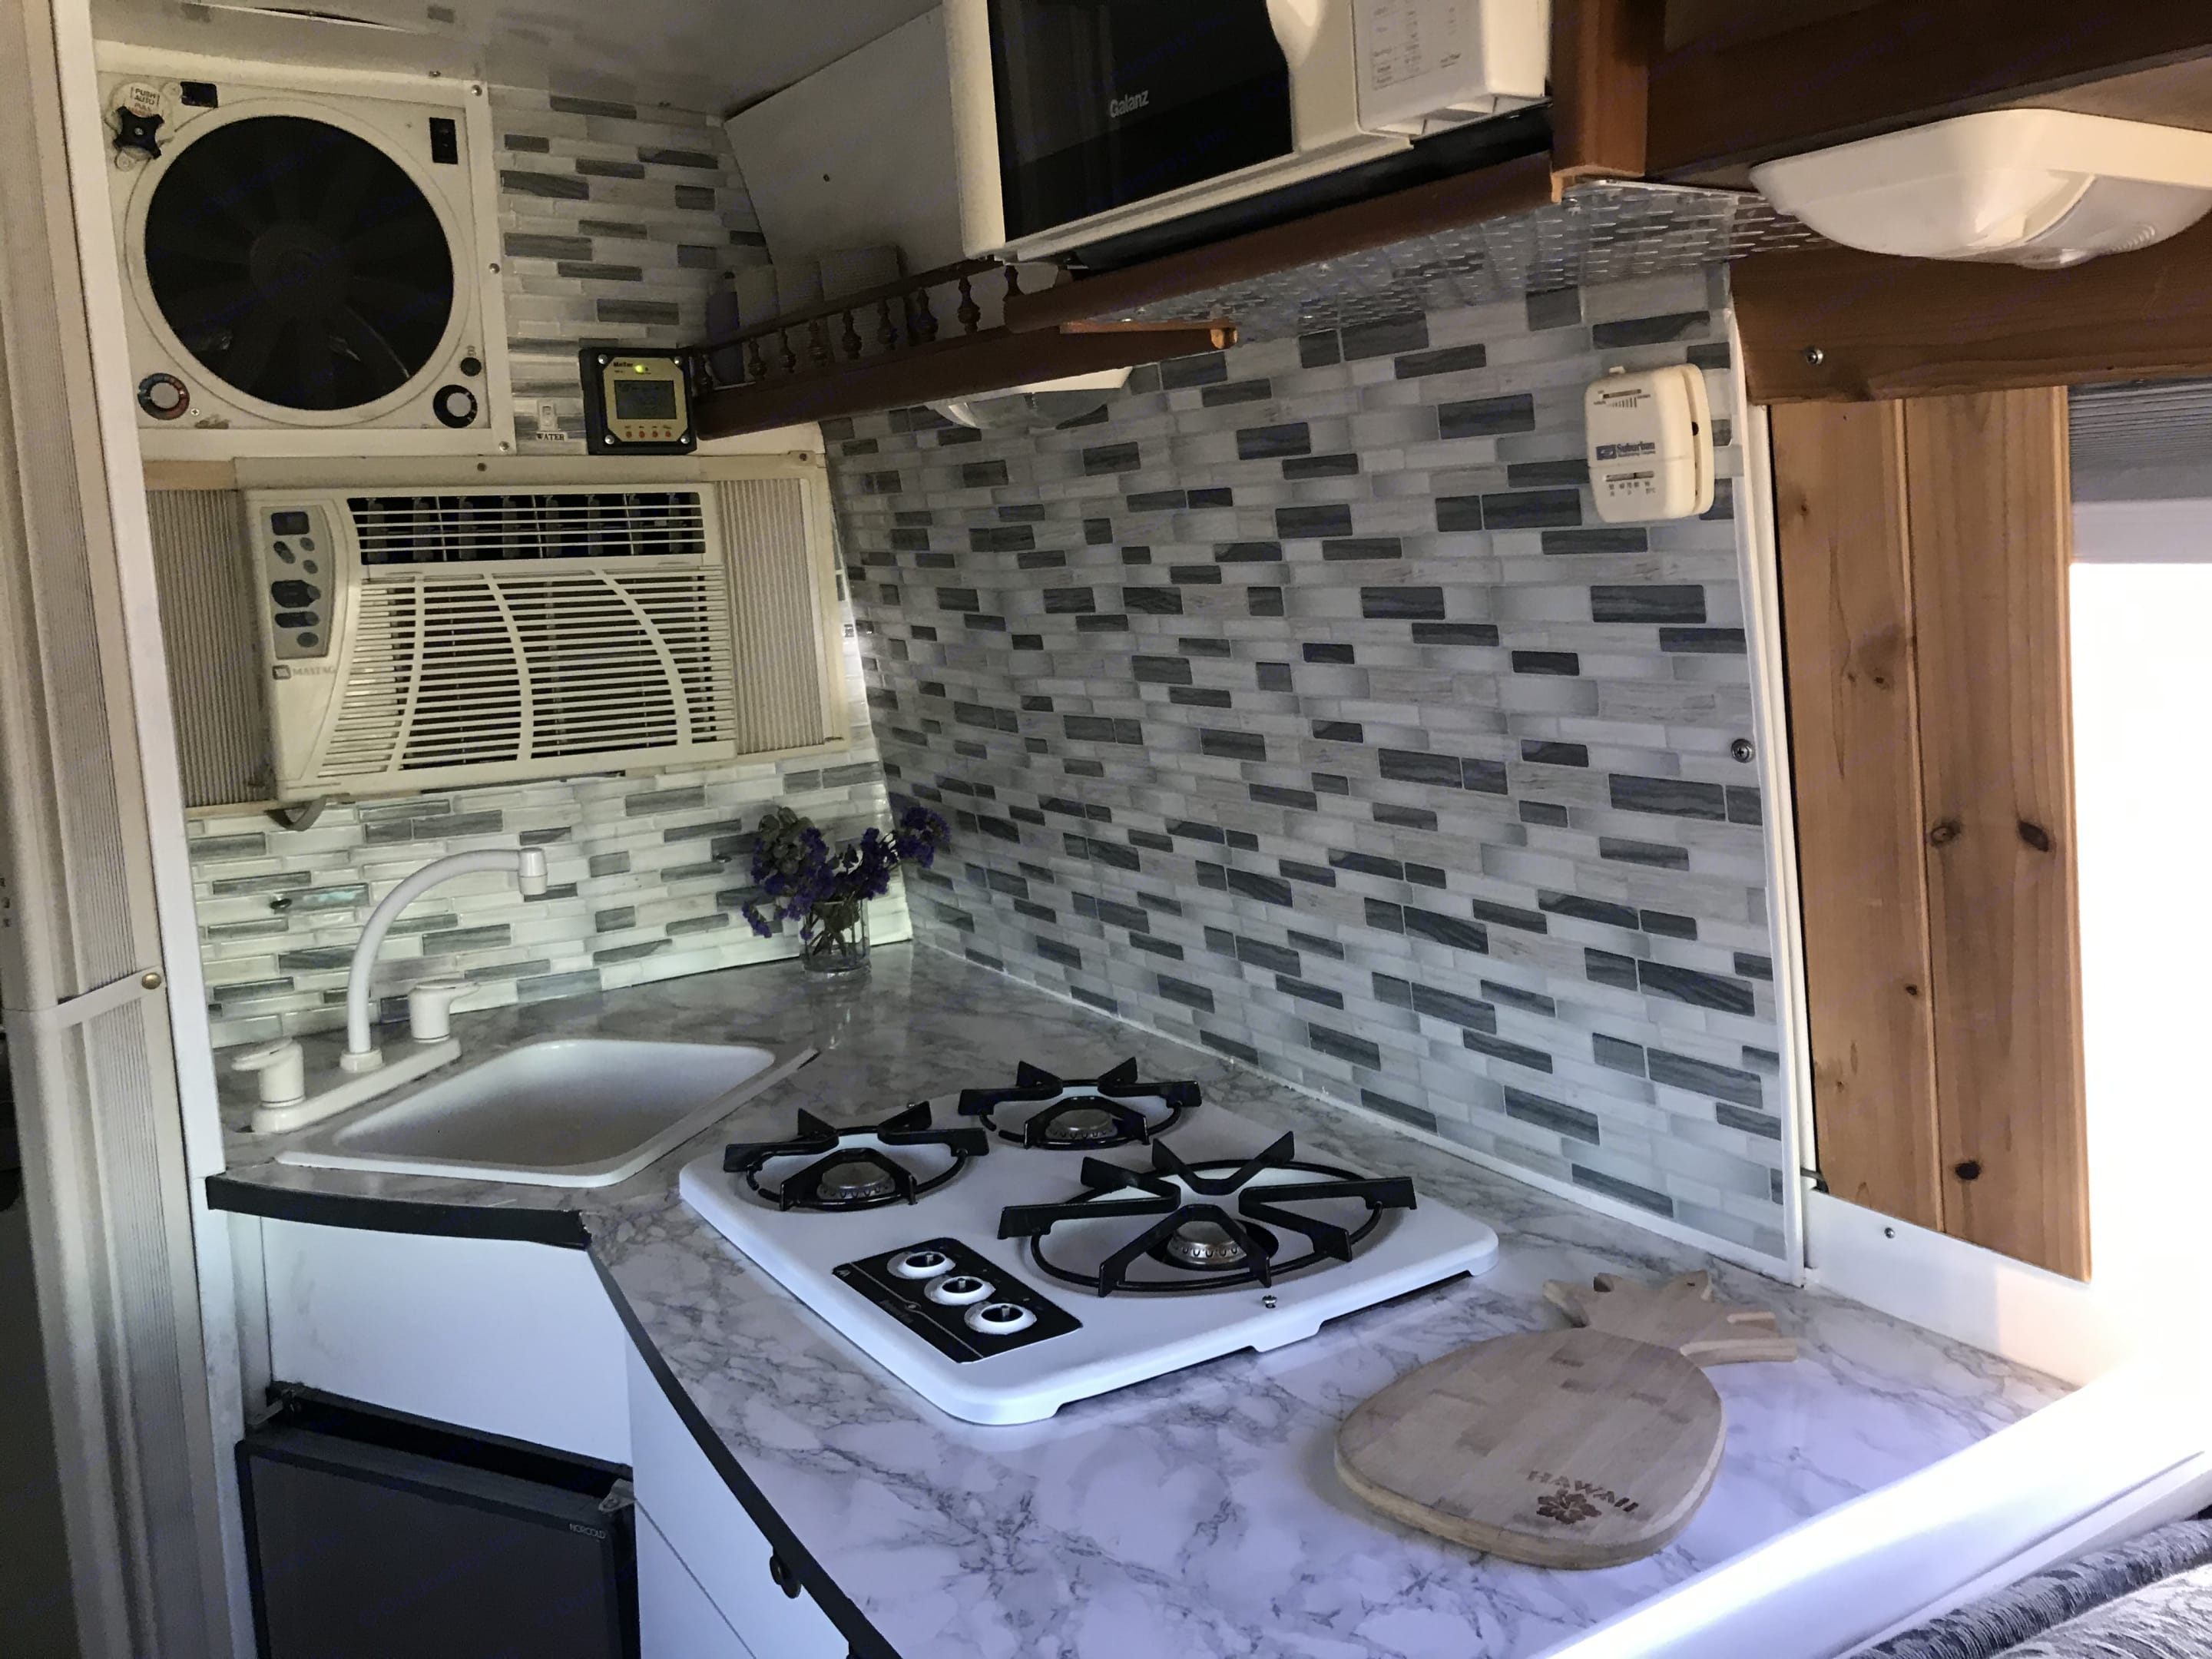 Sink, stove/range, fridge. Fan and AC on the back wall.. Mercedes-Benz Sprinter 2005